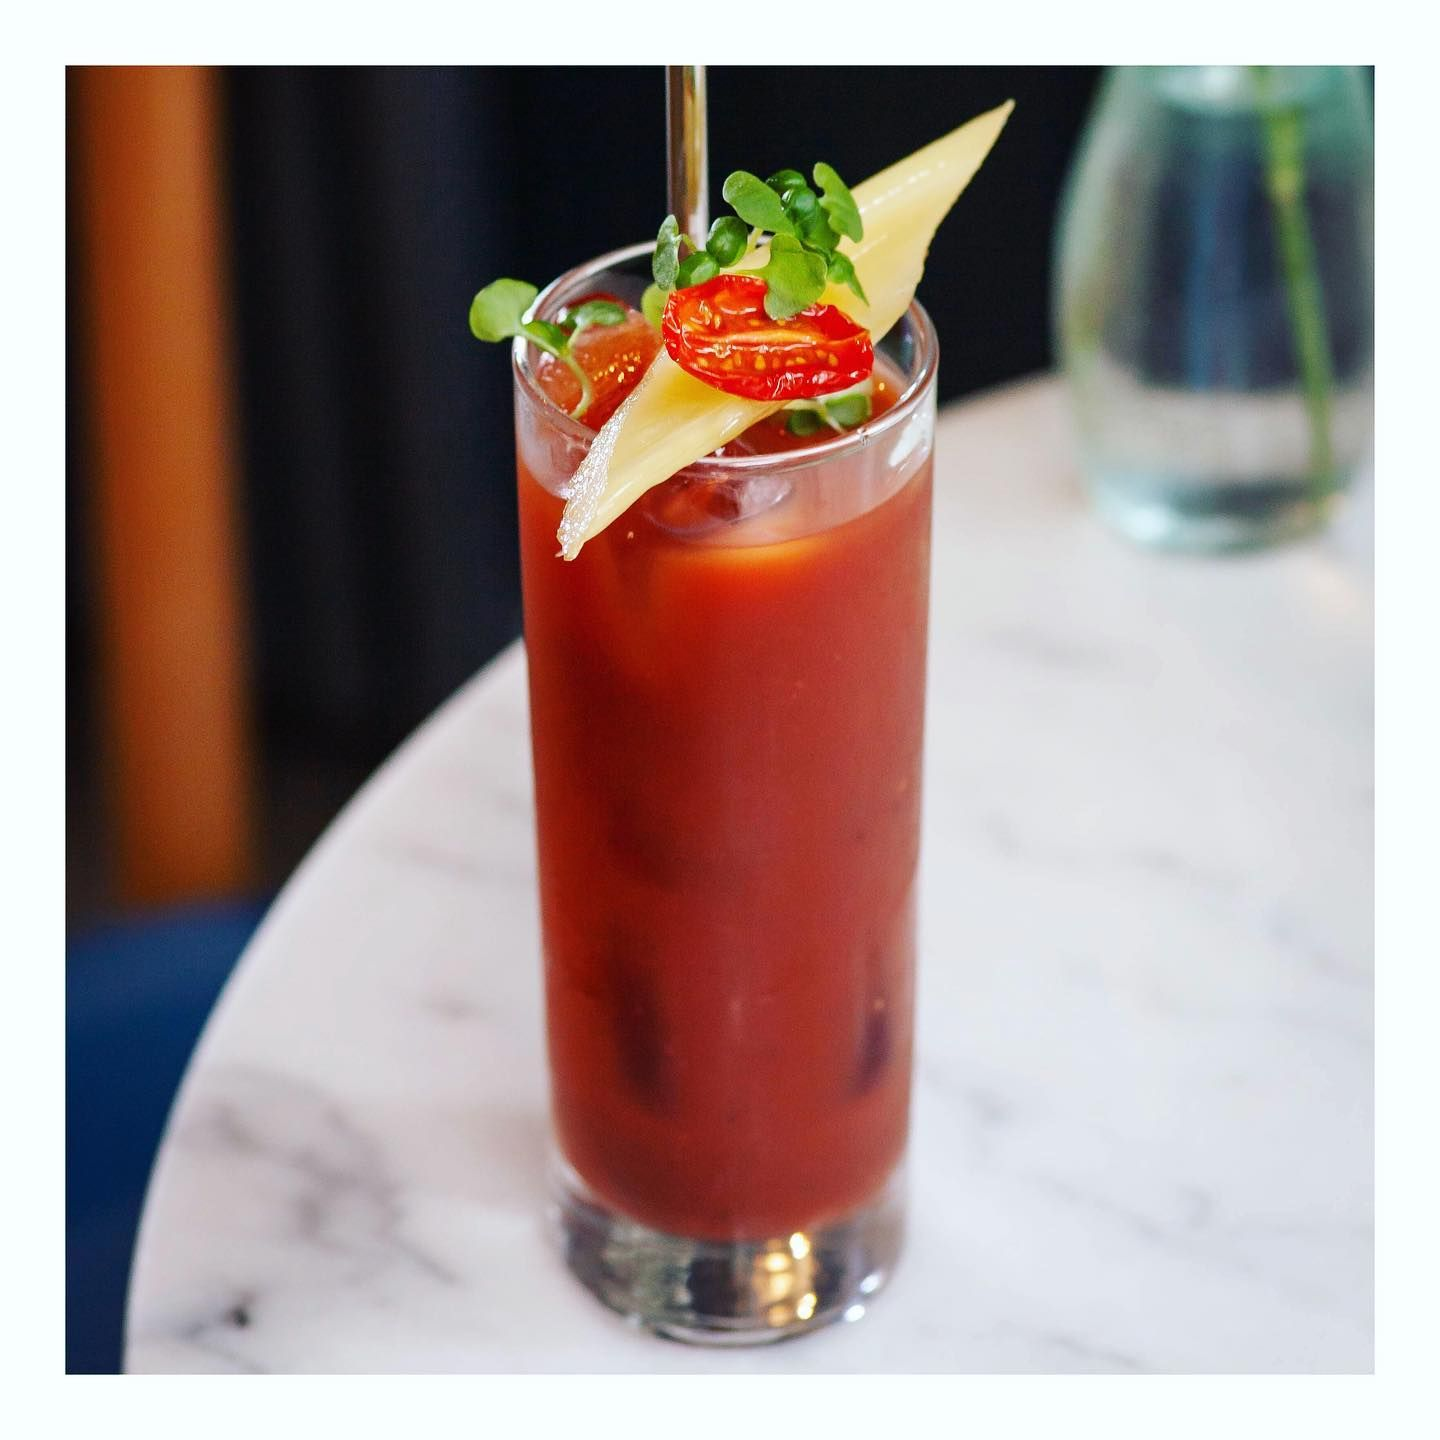 Missing Mamma? She will be arriving in time for this Saturdays Hey Palu at Home cocktail delivery.  Get your brunch game on! . : @inglisphoto . #heypaluathome #heypalu #bloodymarytime #cocktailsathome #edinburghlife #brunchathome